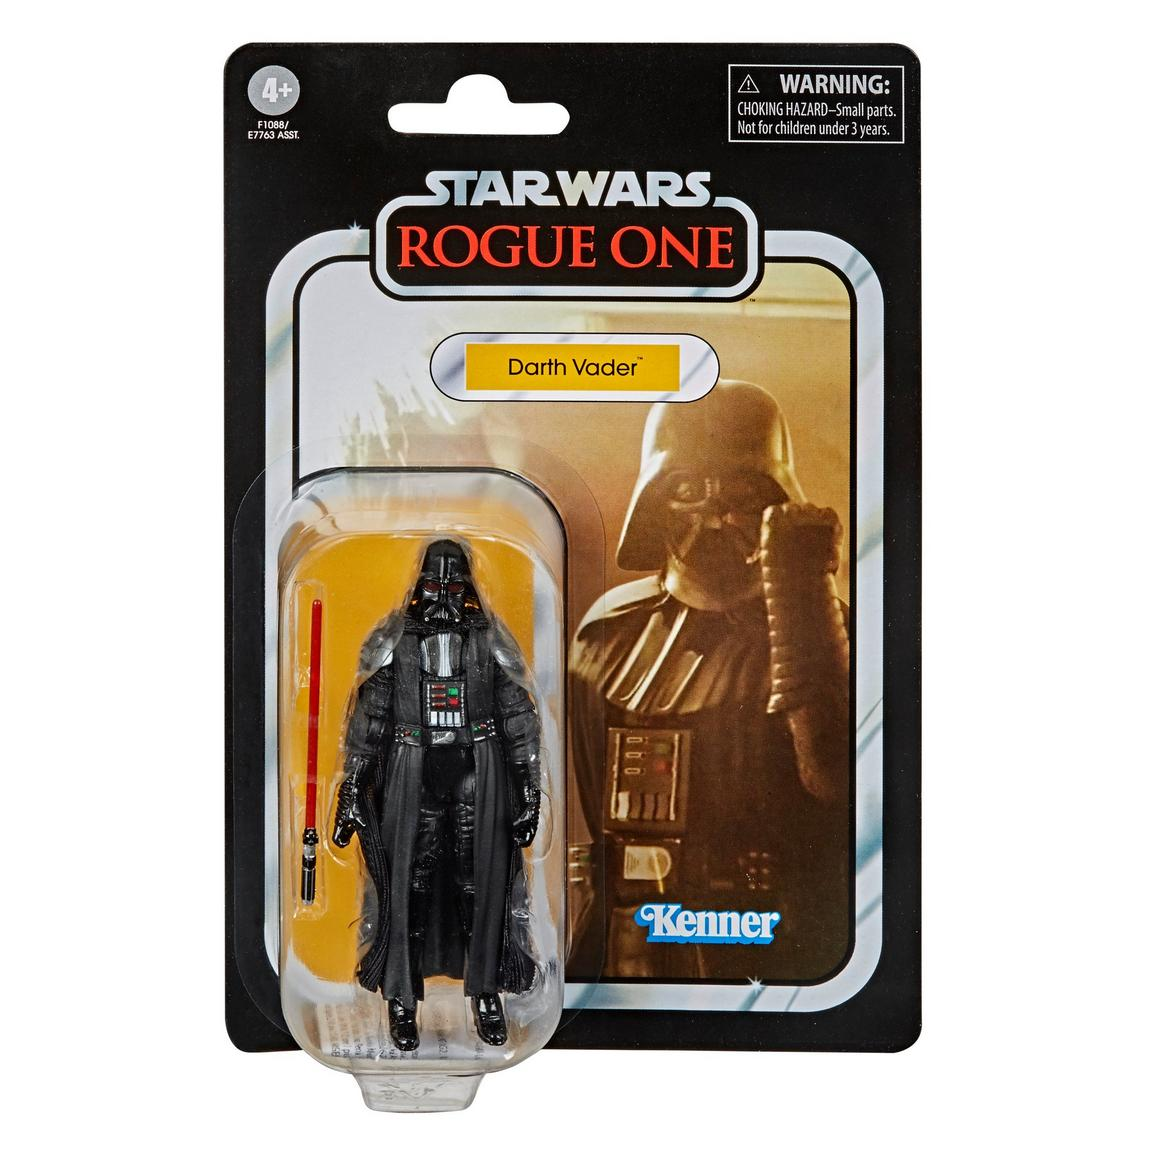 Star Wars The Vintage Collection Darth Vader (Rogue One) 3 3/4-Inch Action Figure画像